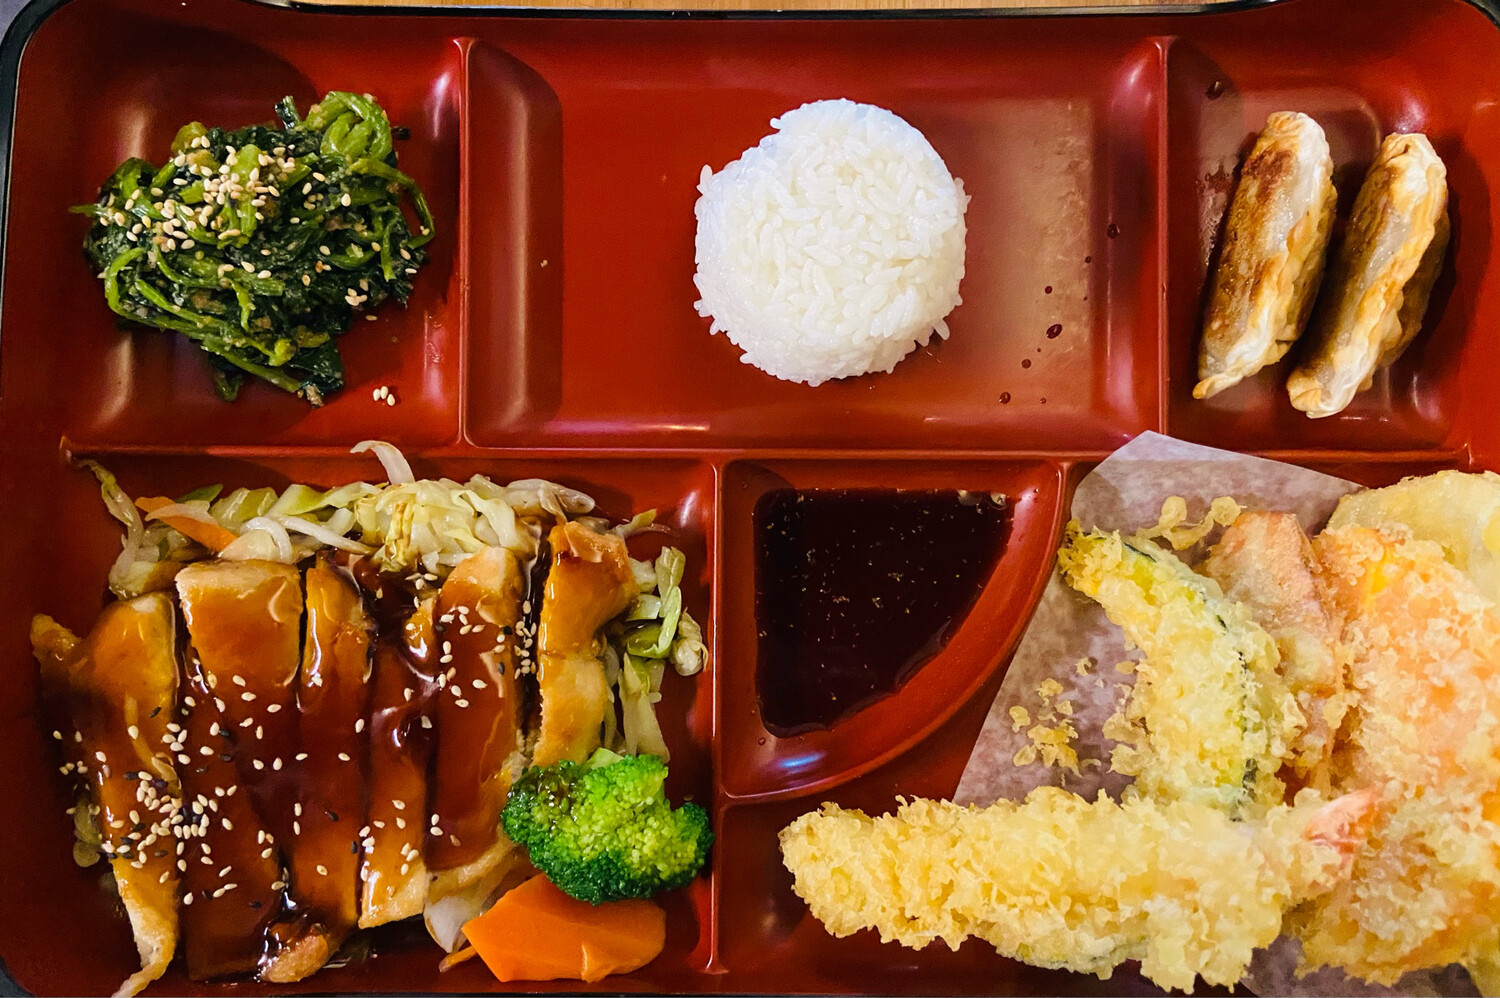 190. Lunch Box A